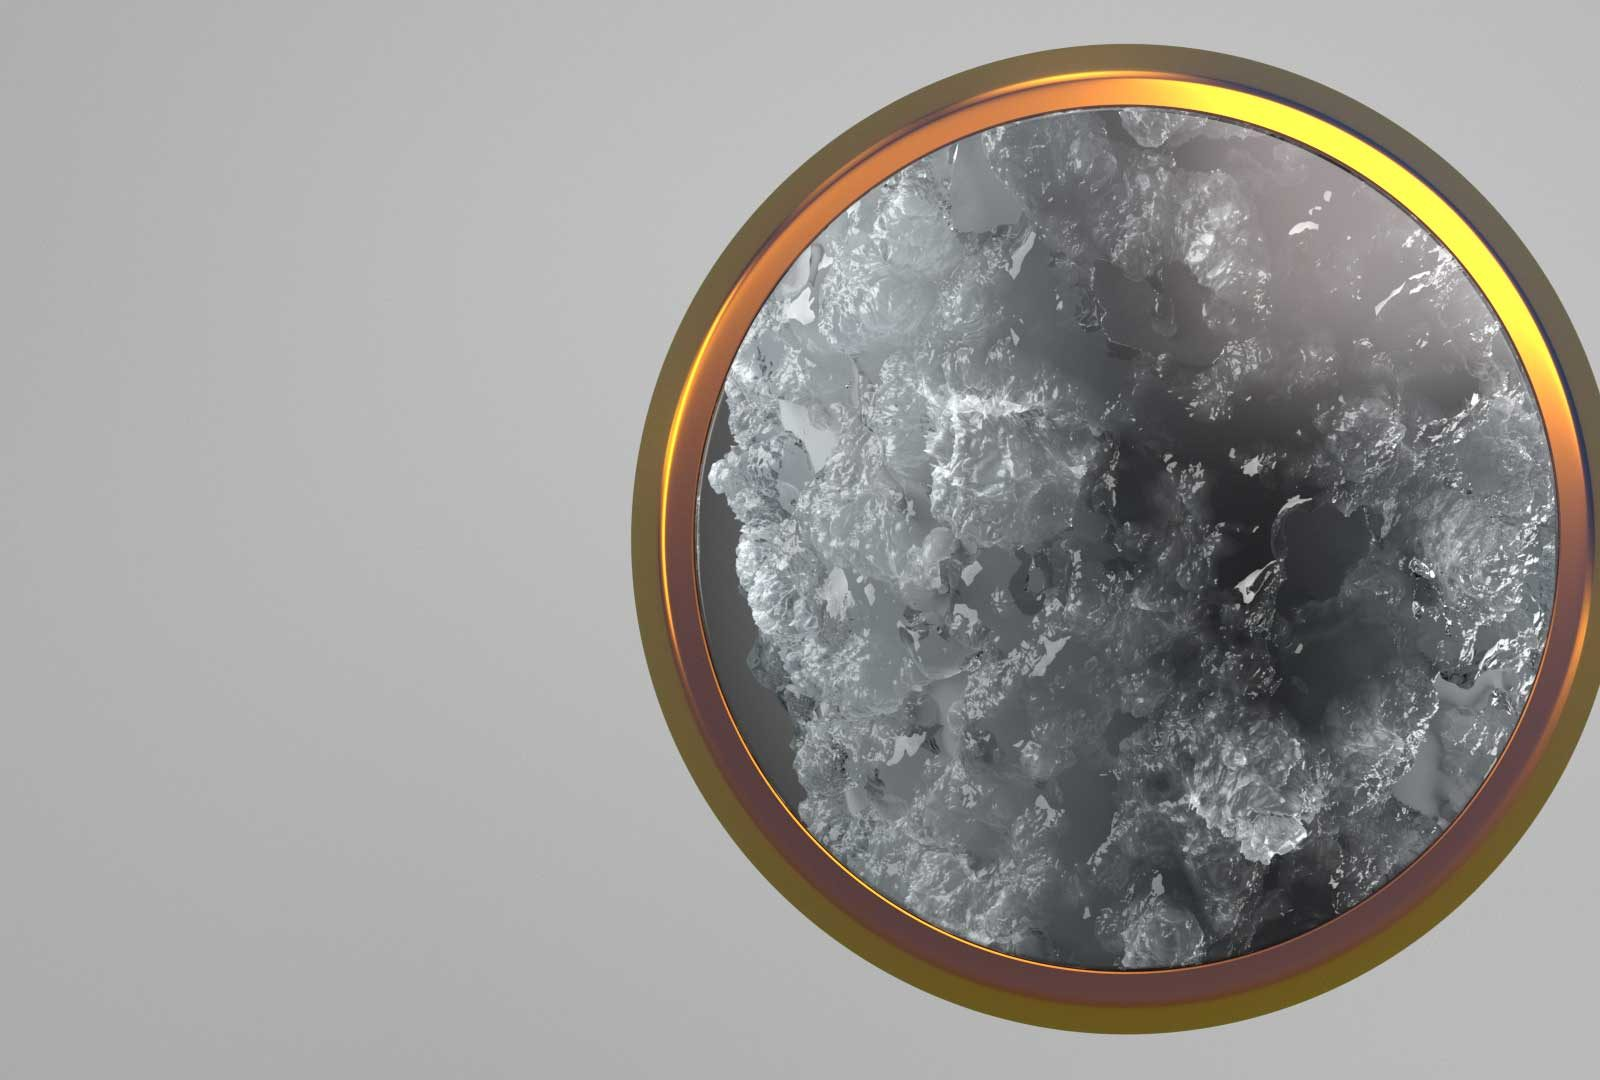 Slush for Cinema 4D from helloluxx by Dan Couto